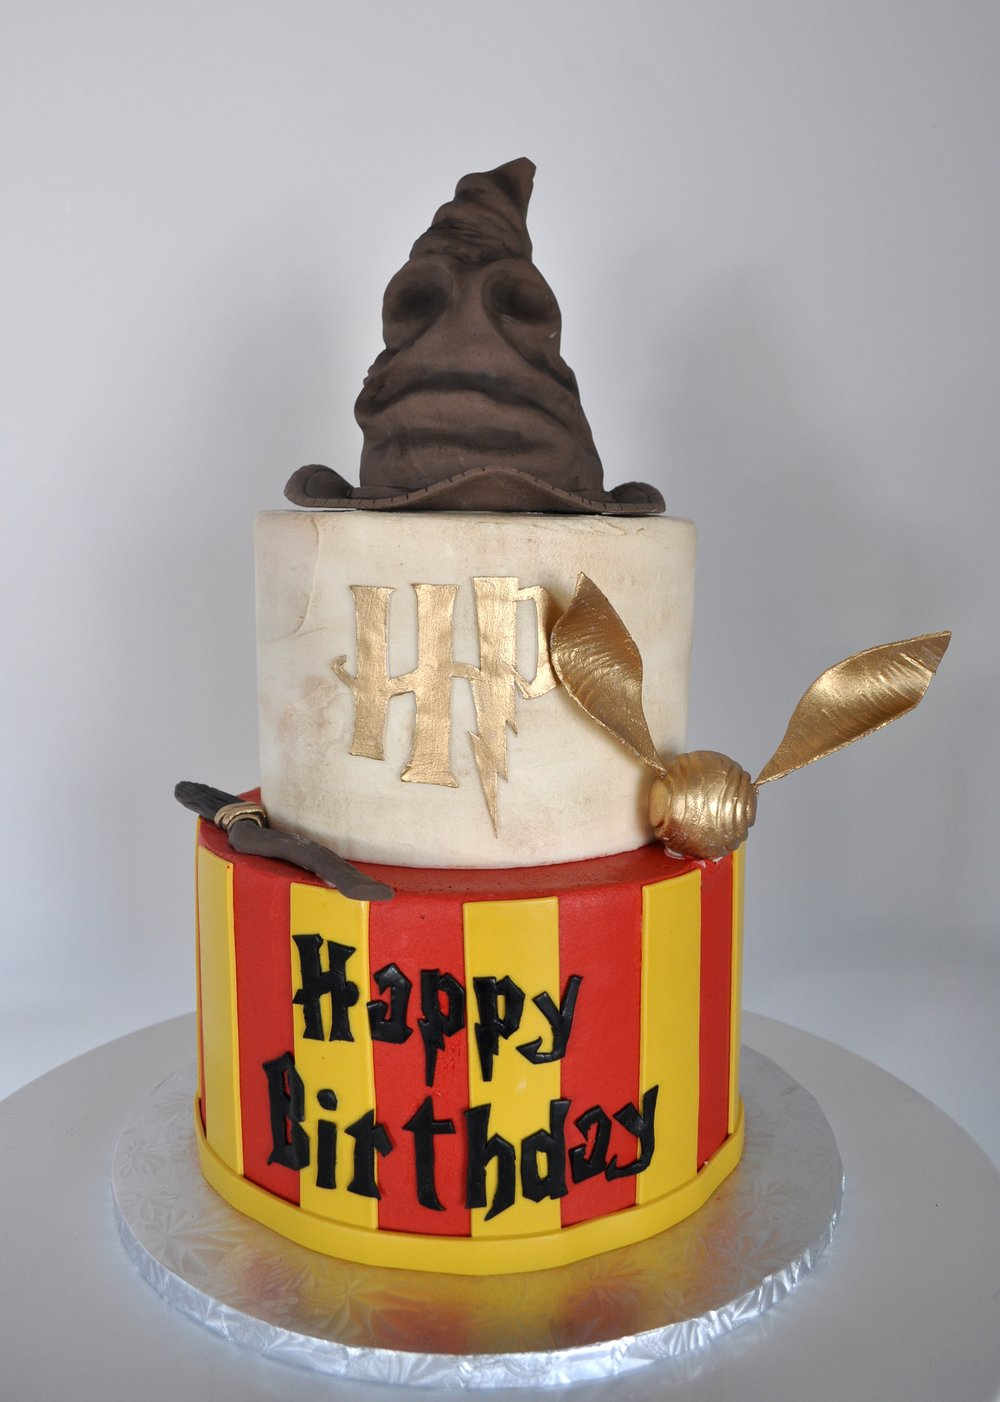 Harry Potter Birthday Cake.jpg